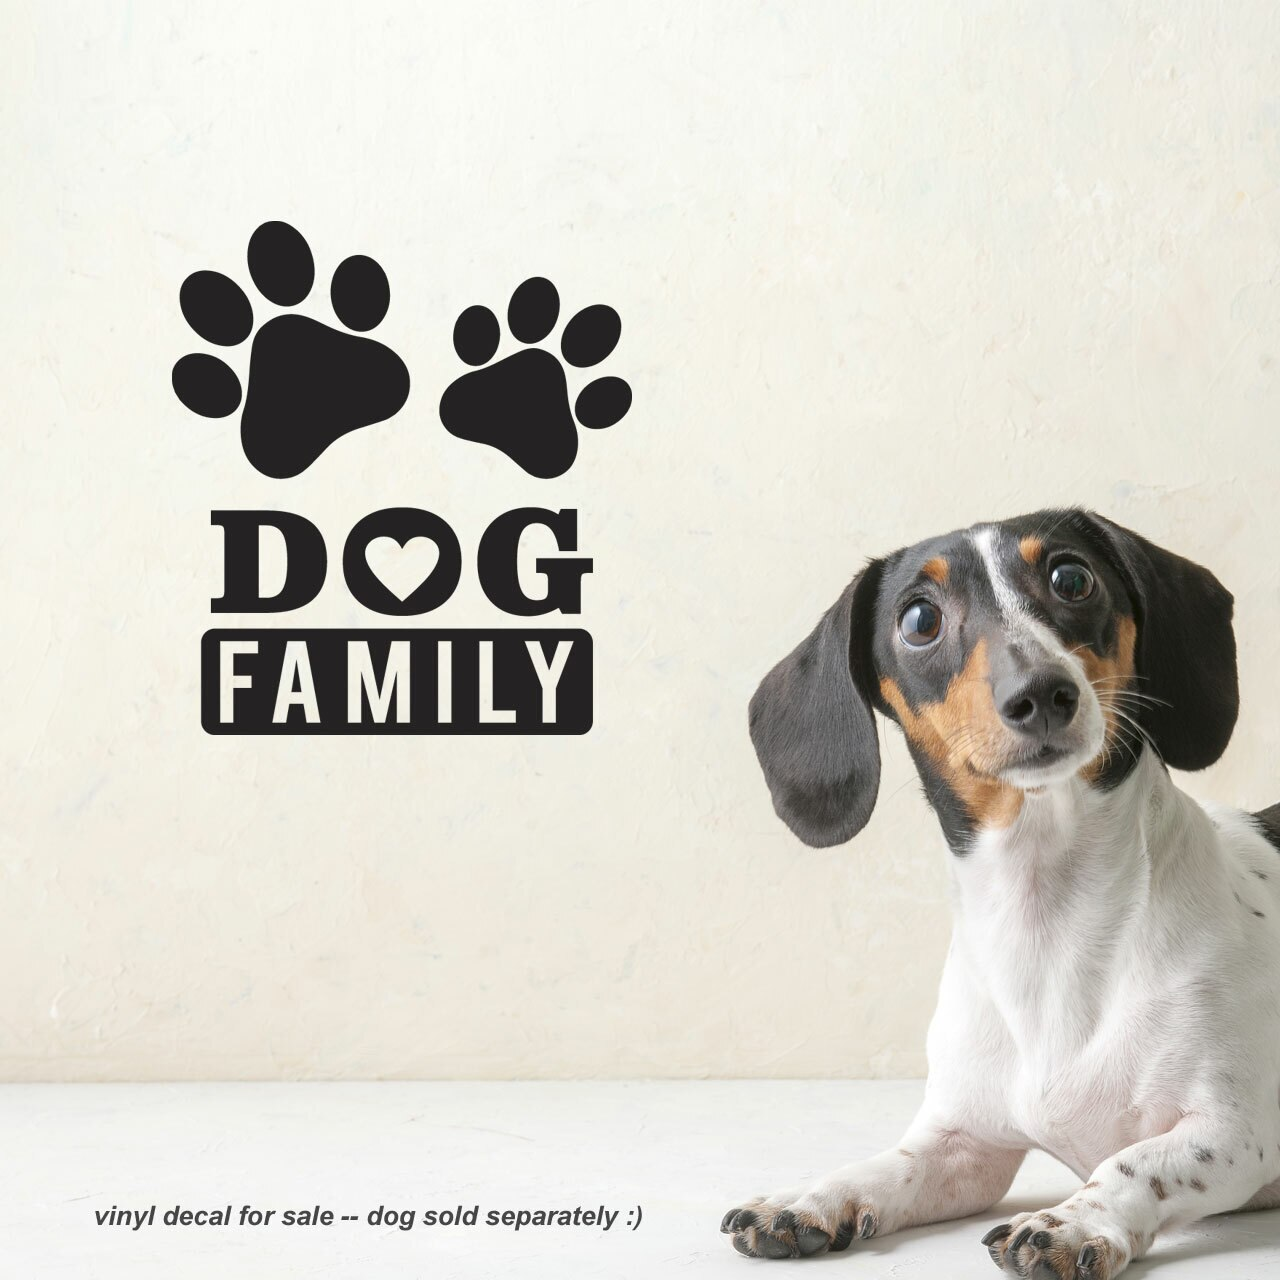 """Two paw-prints with the words """"Dog Family"""" written beneath in an artistic way in black vinyl applied to a white wall to the left of a small dog"""